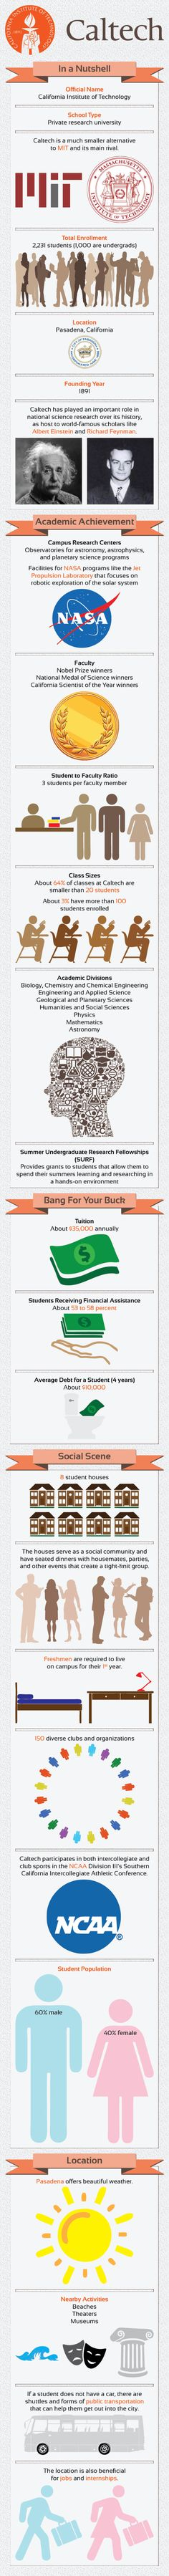 California Institute of Technology Infographic